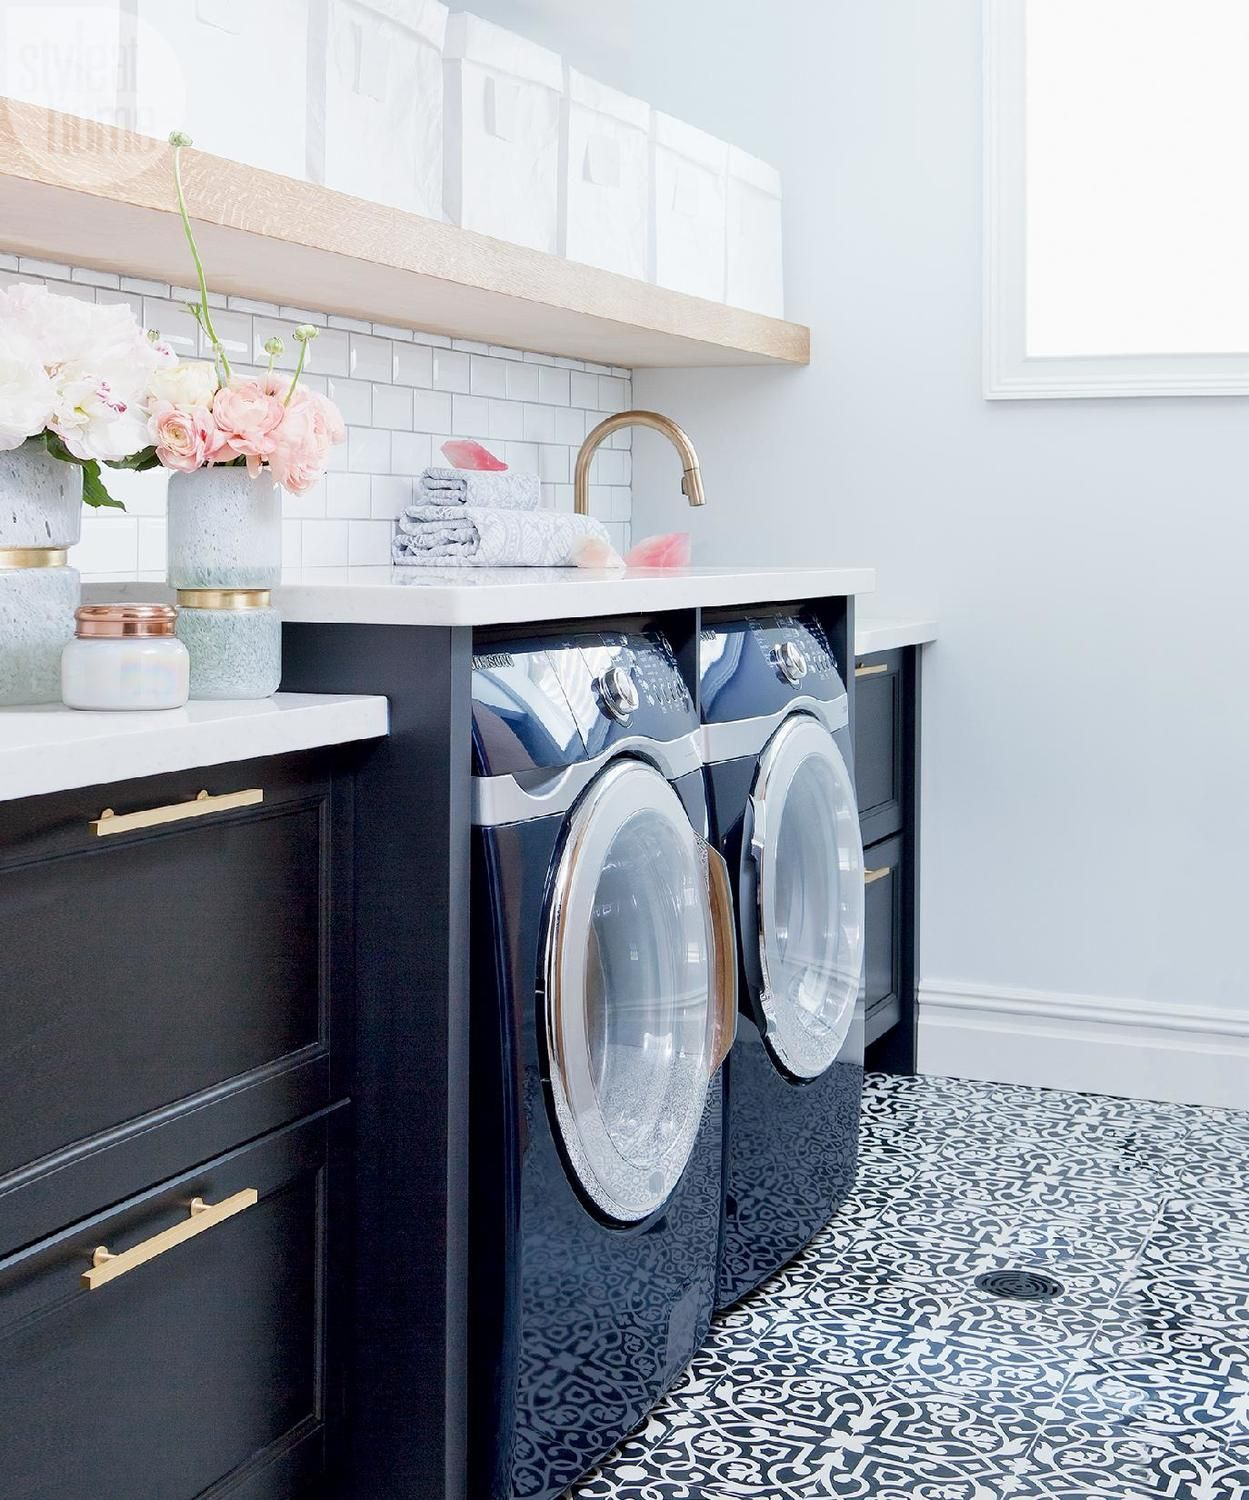 Check out this absolutely dreamy laundry room small space hack ...